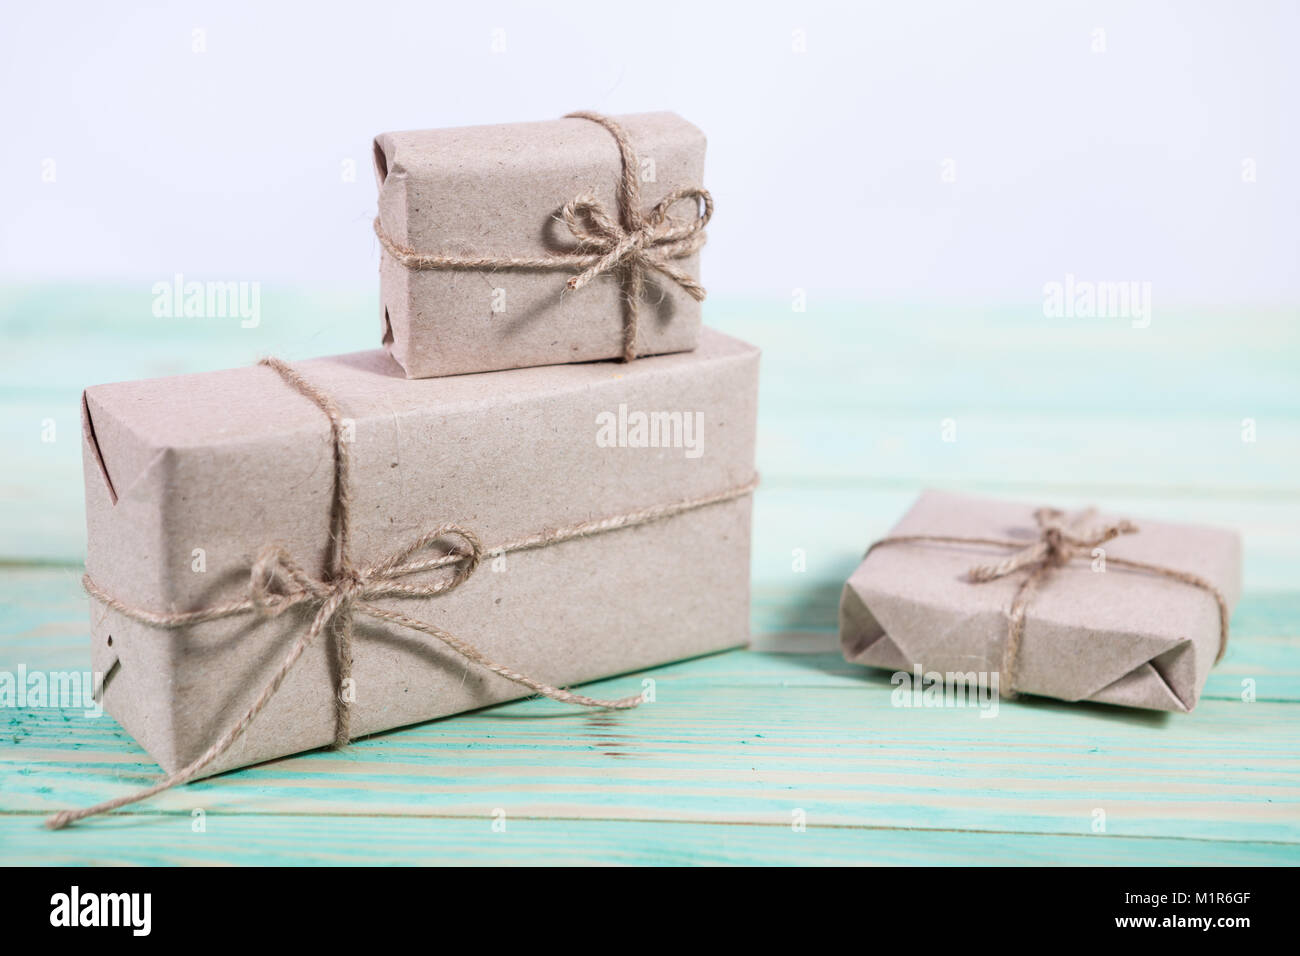 Presents for any holiday concept. Border of decorative gifts wrapped ...